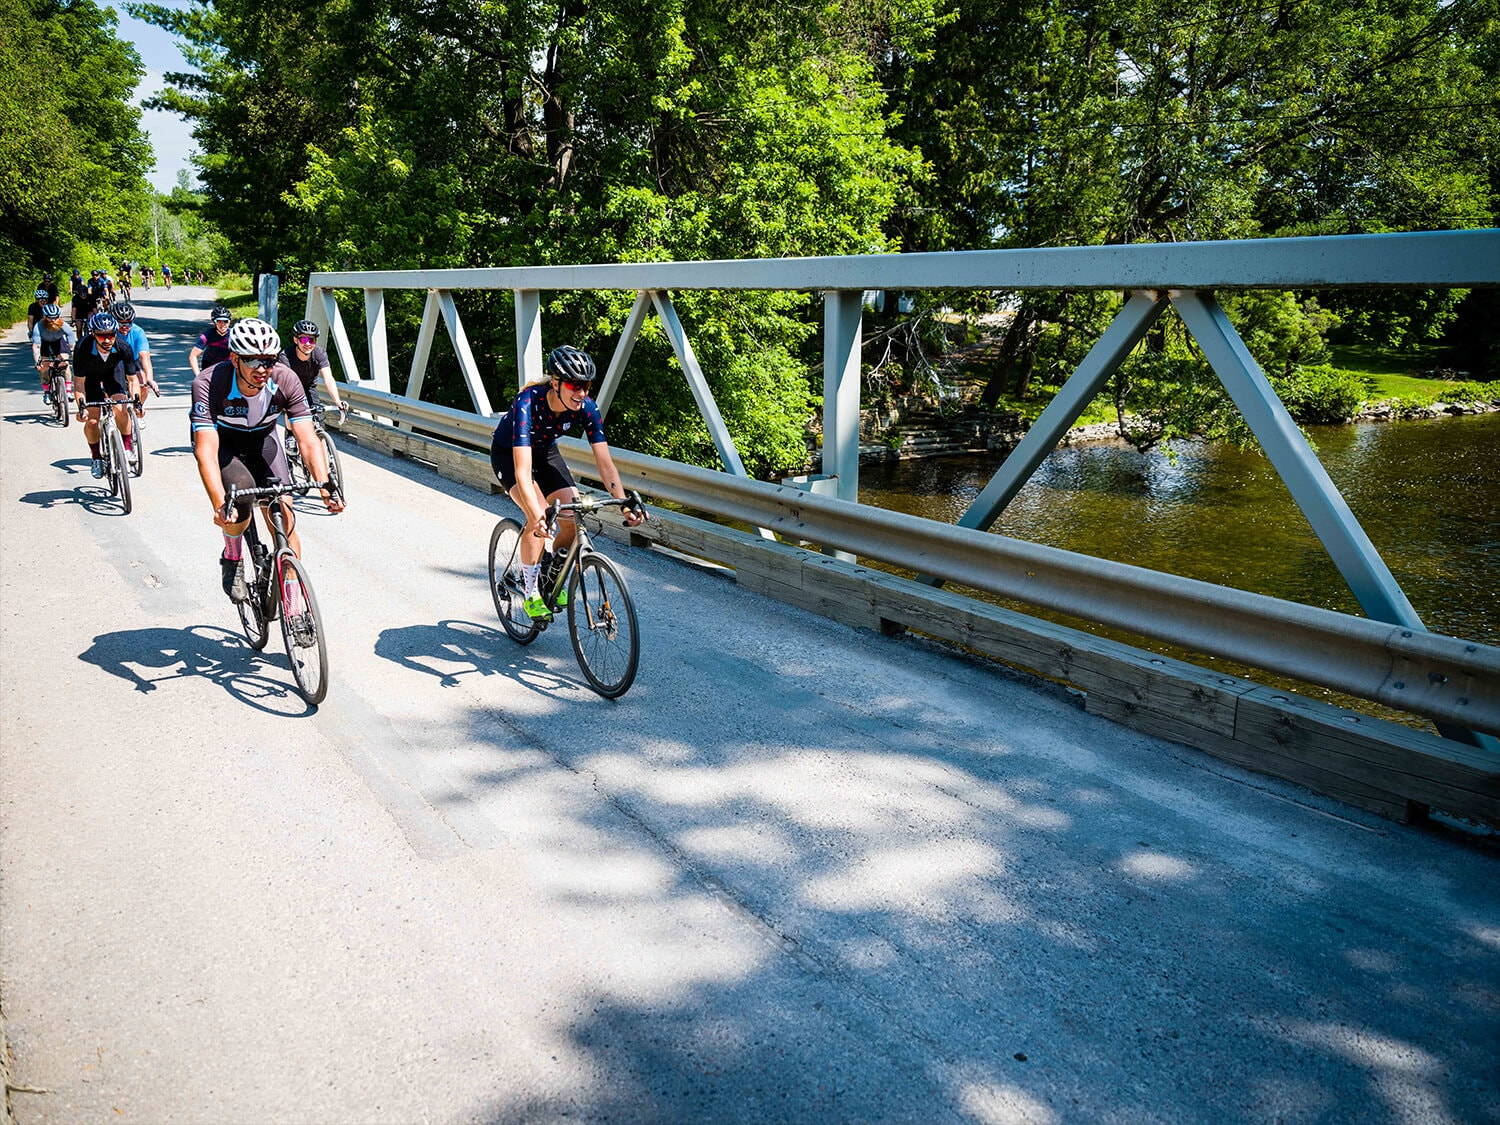 Road cyclist riding in a group across a bridge on their road bicycles with Shimano gears